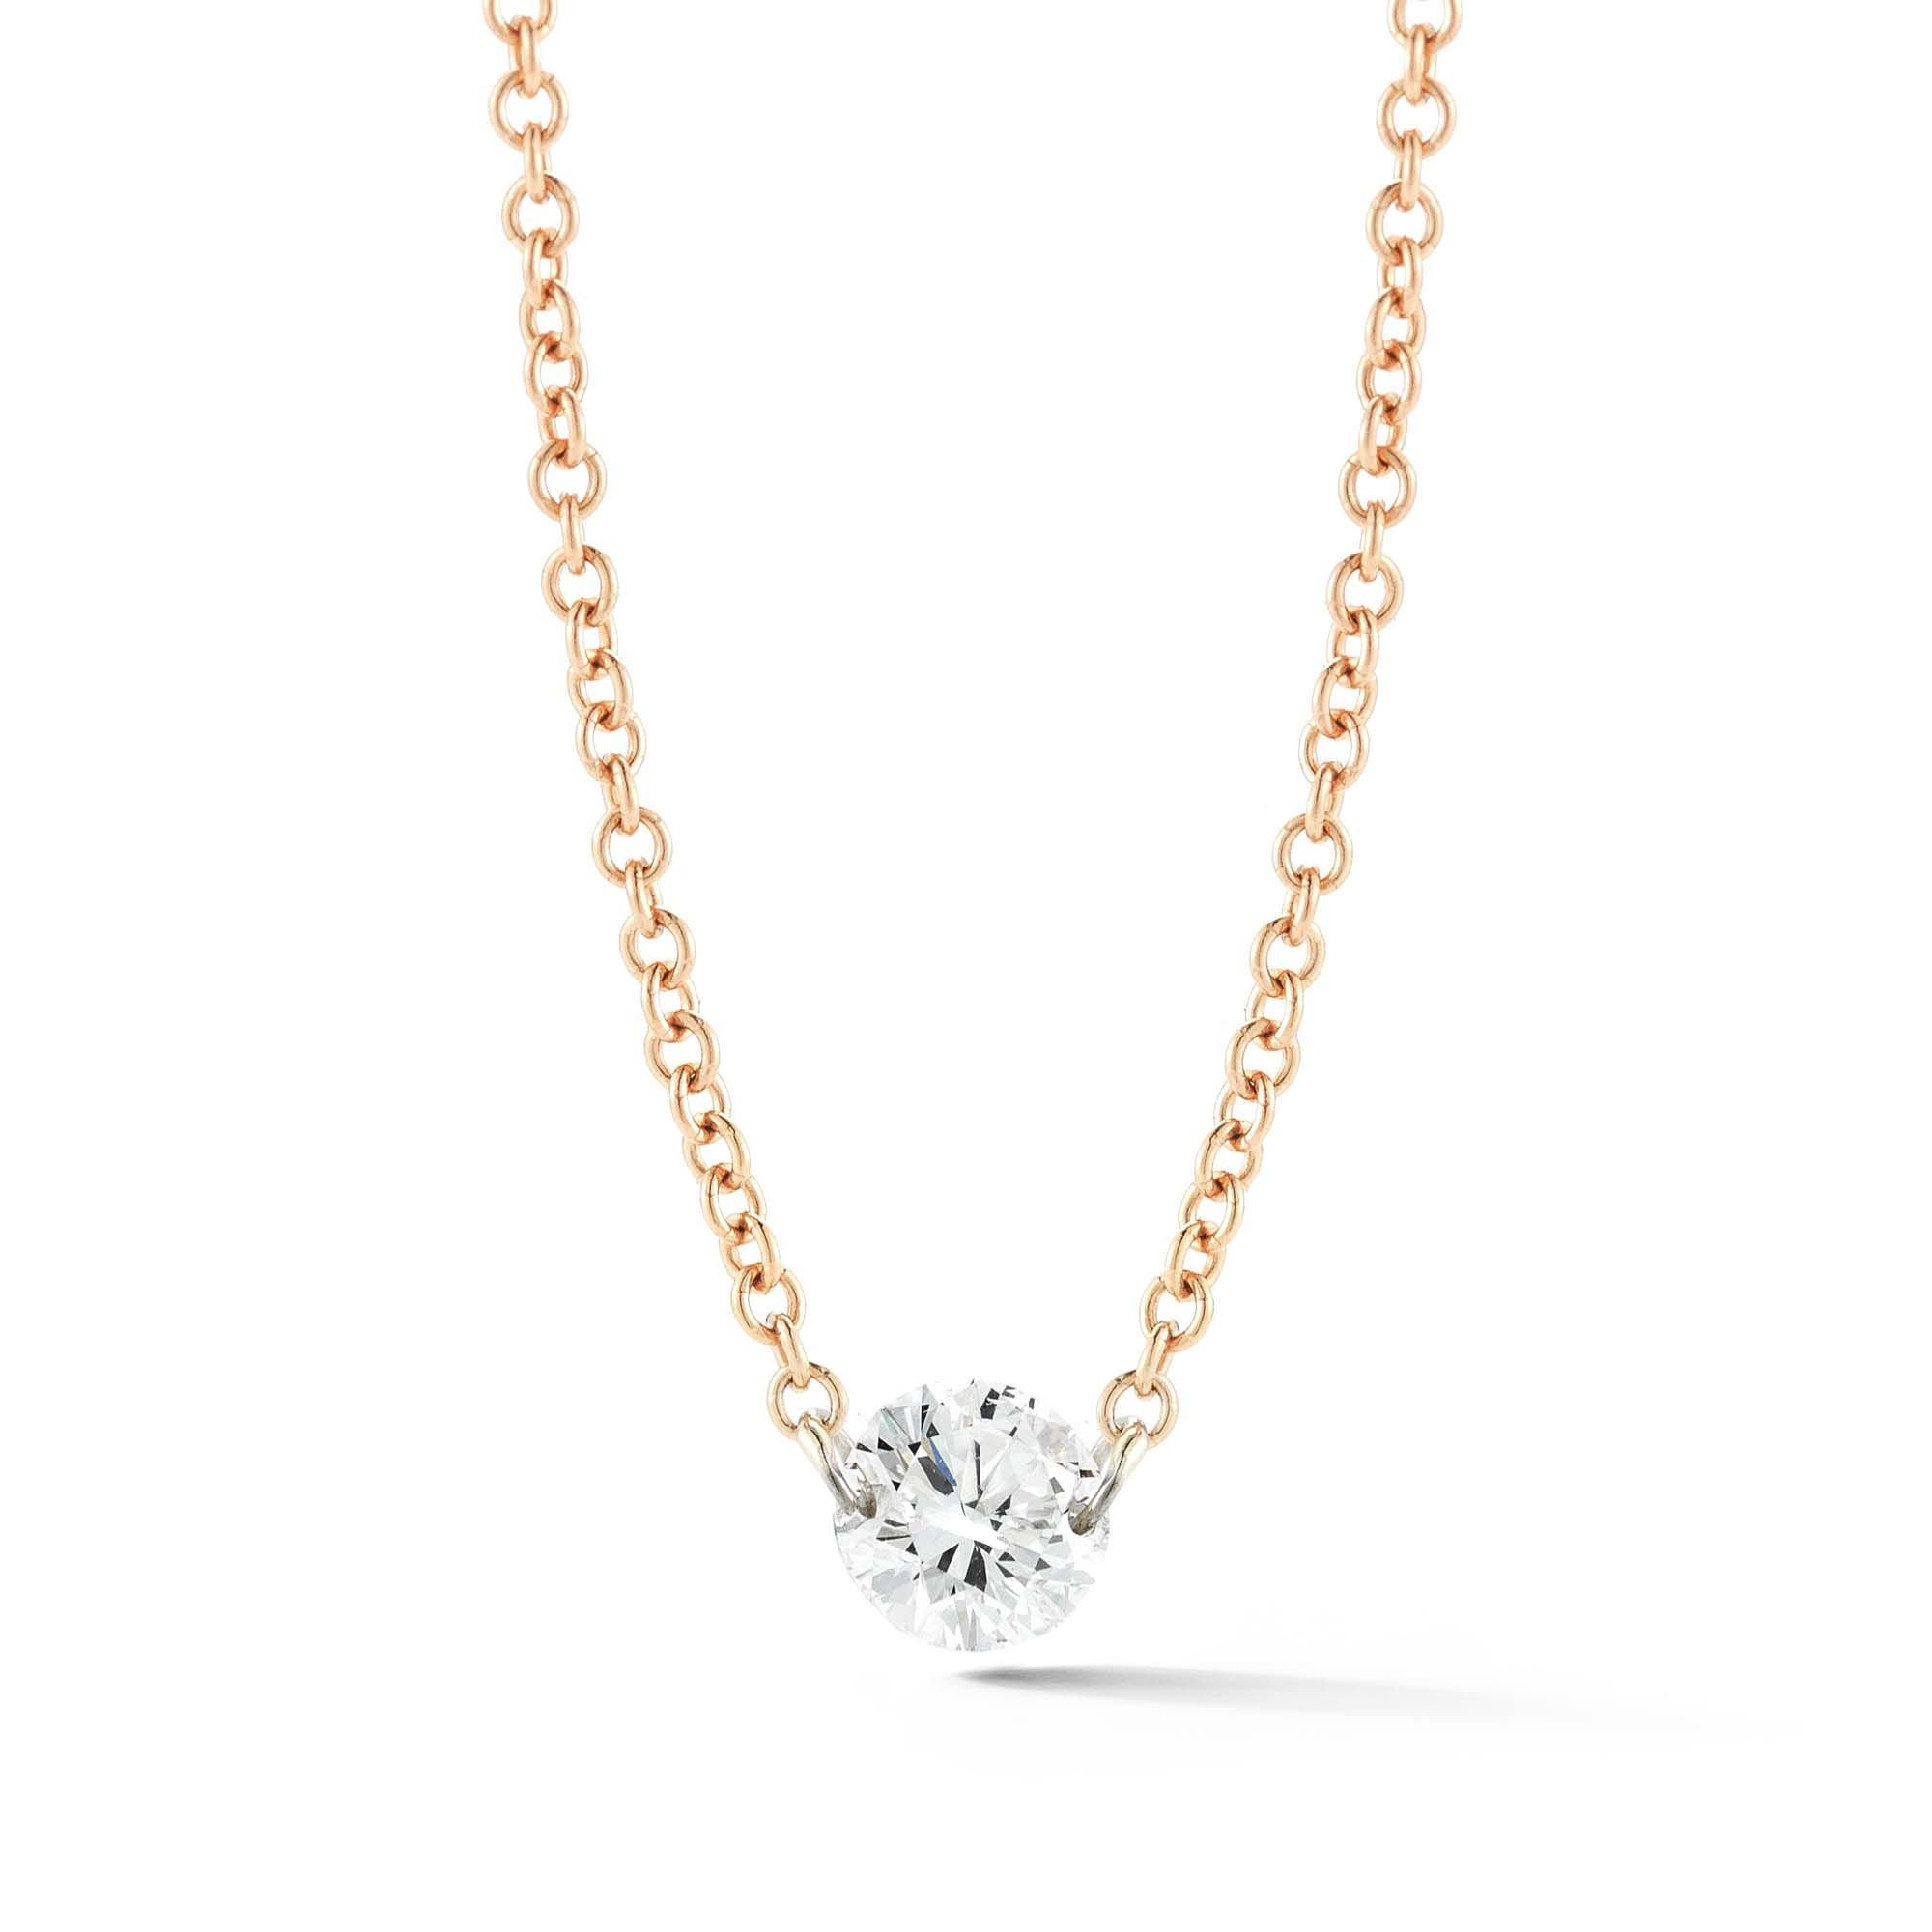 Aero Diamonds Solo Medium 18k Centered Diamond Necklace Pertaining To 2019 Medium Diamond Necklaces (View 5 of 25)